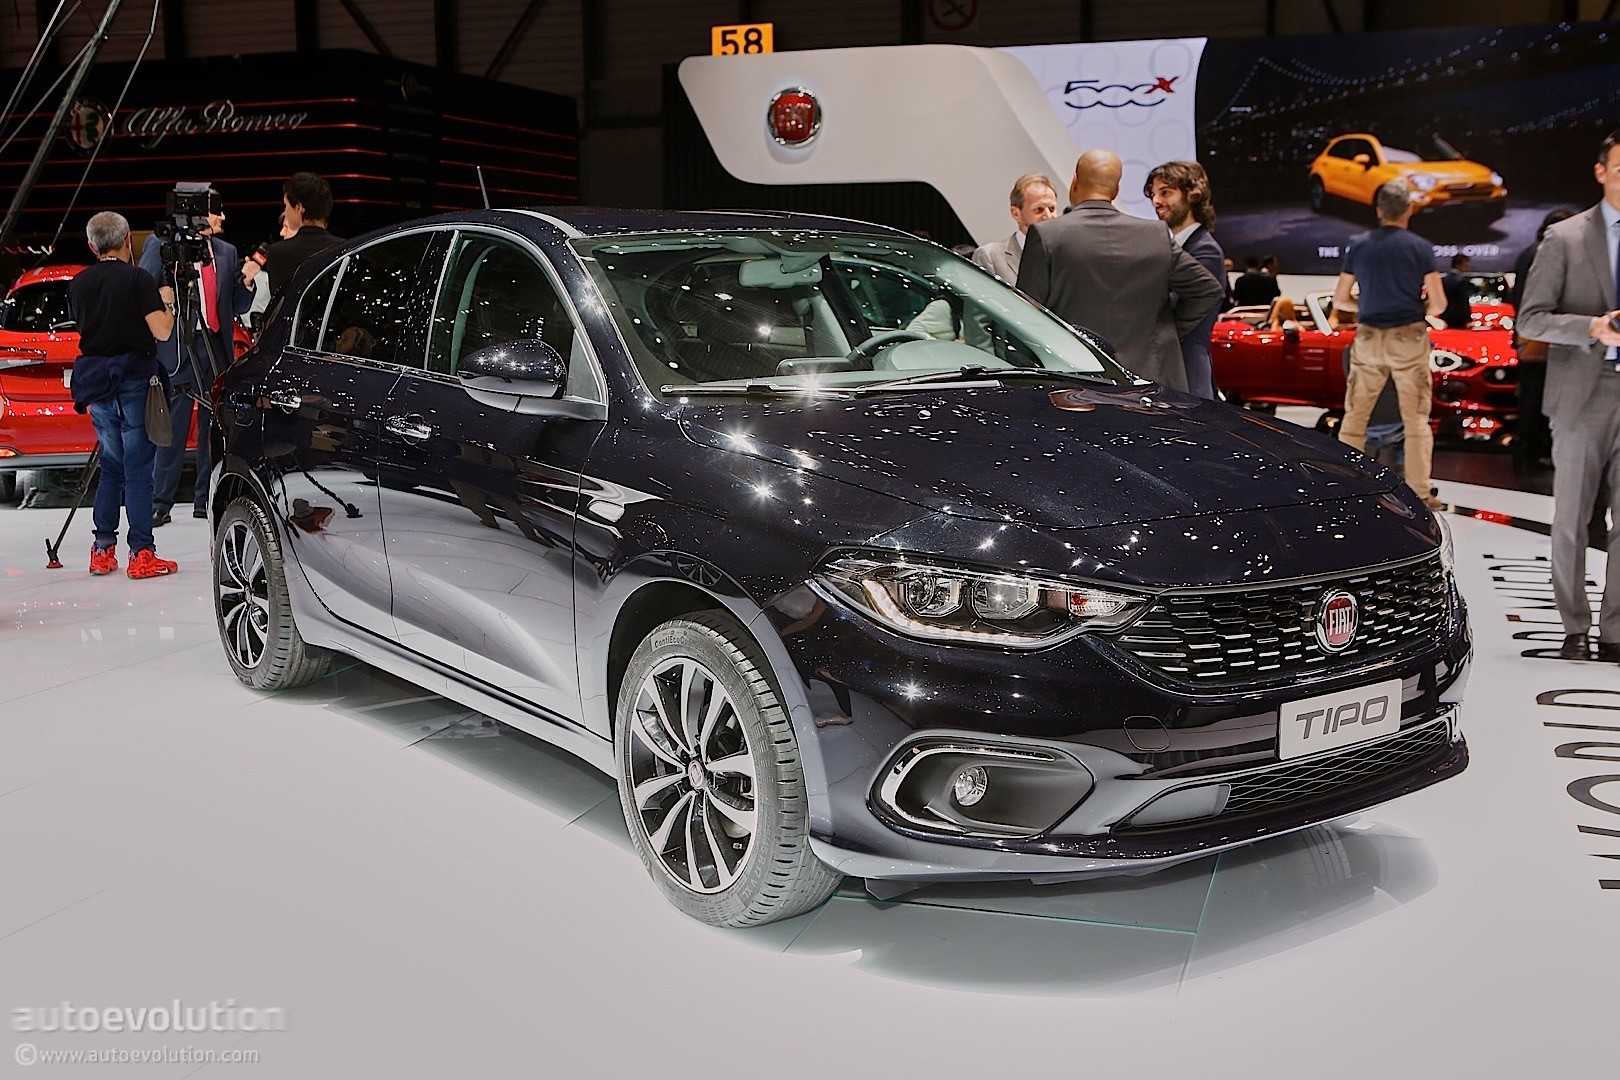 2016 Fiat Tipo Hatchback Priced At 12 750 In Italy